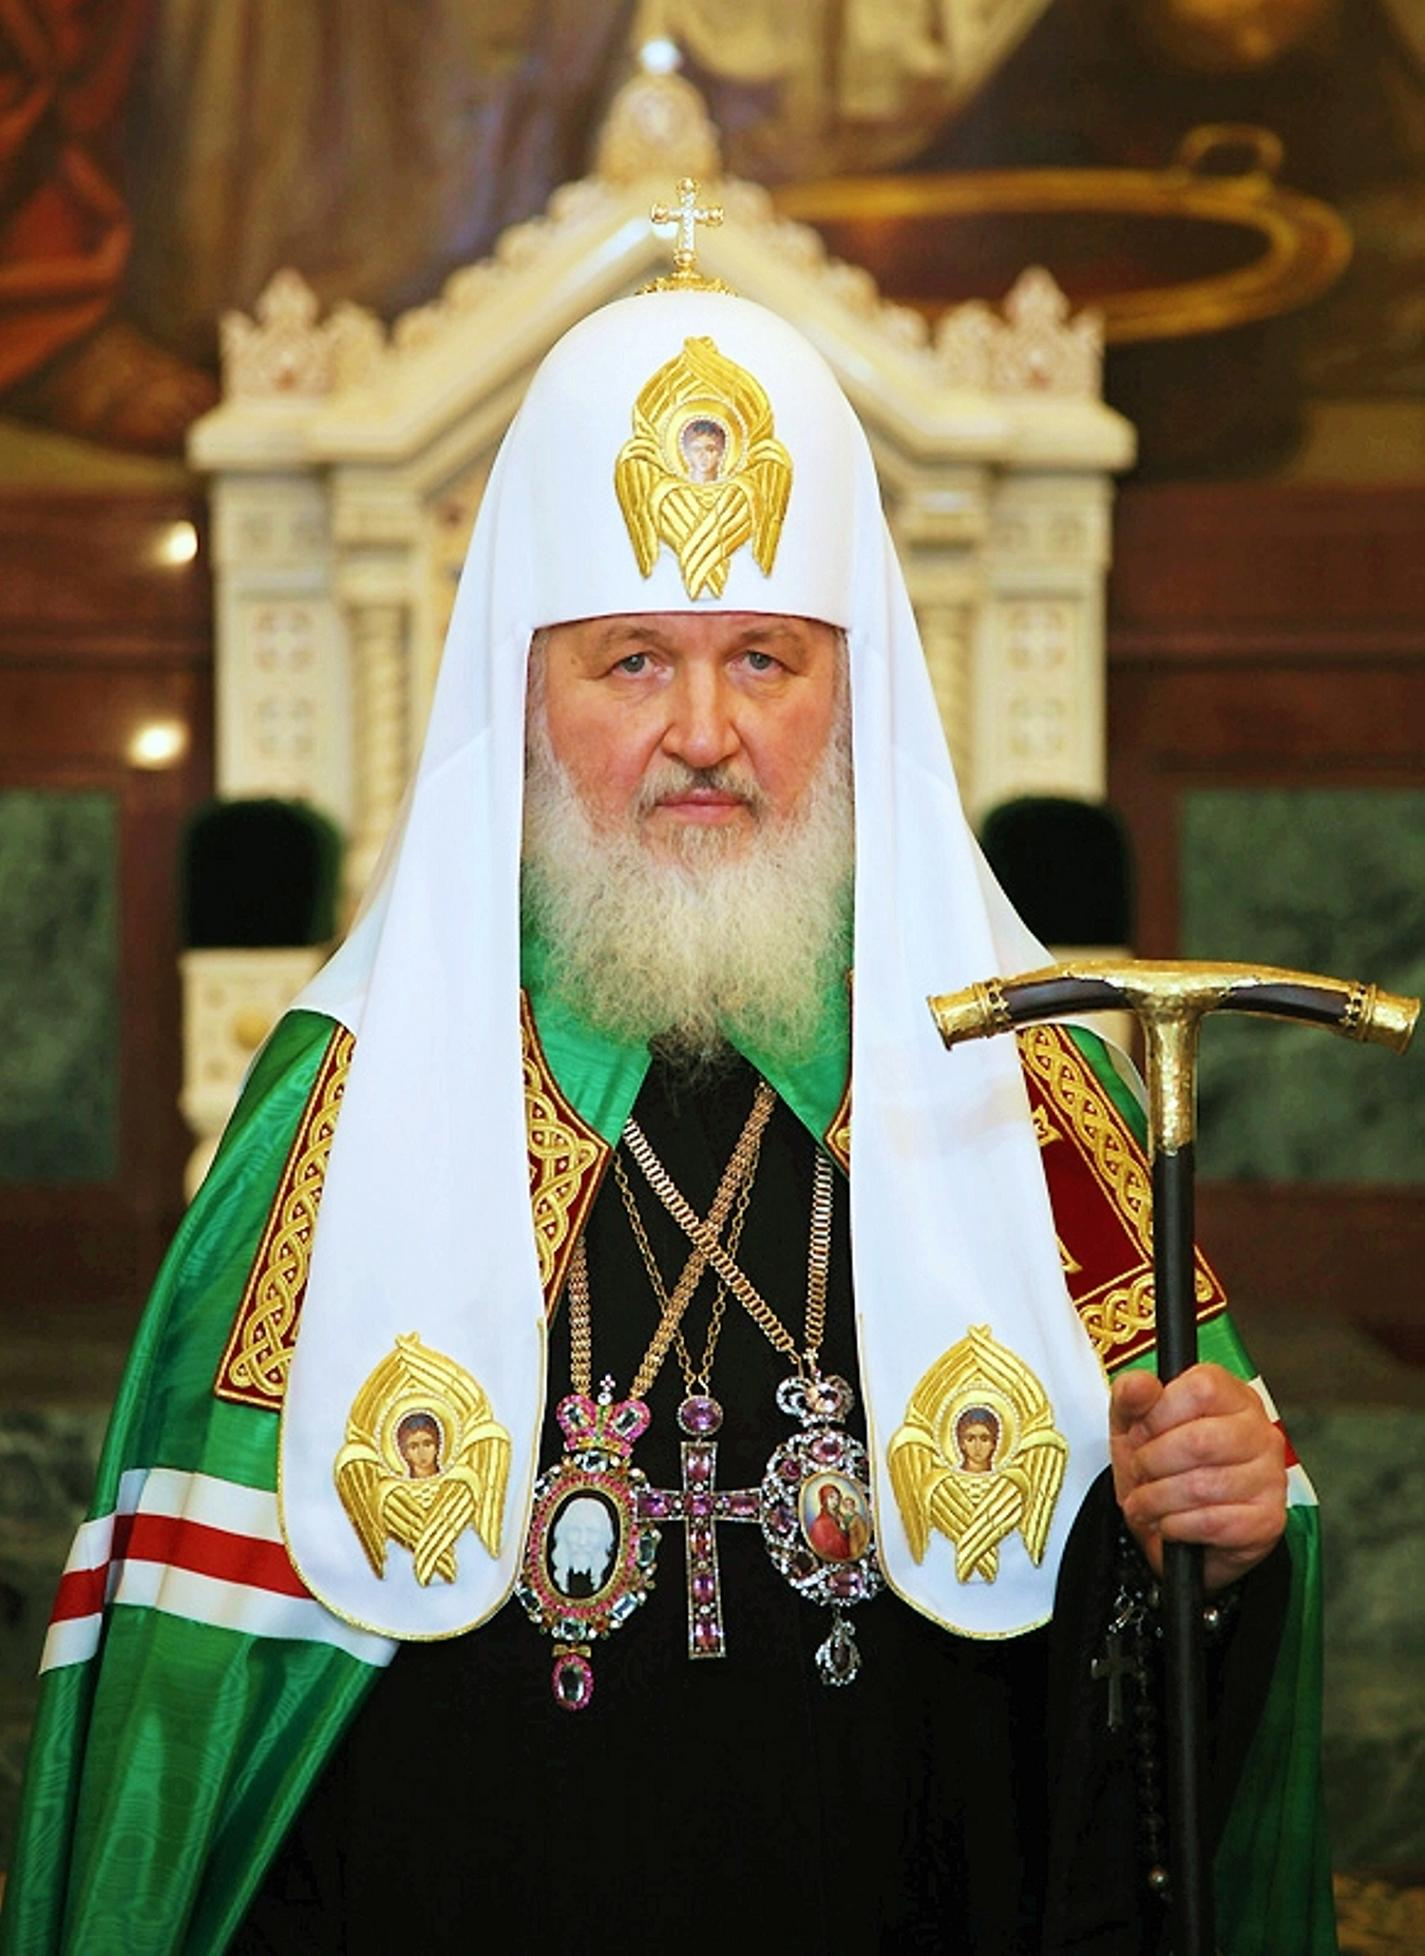 His_Holyness_Patriarch_Kirill_of_Moscow